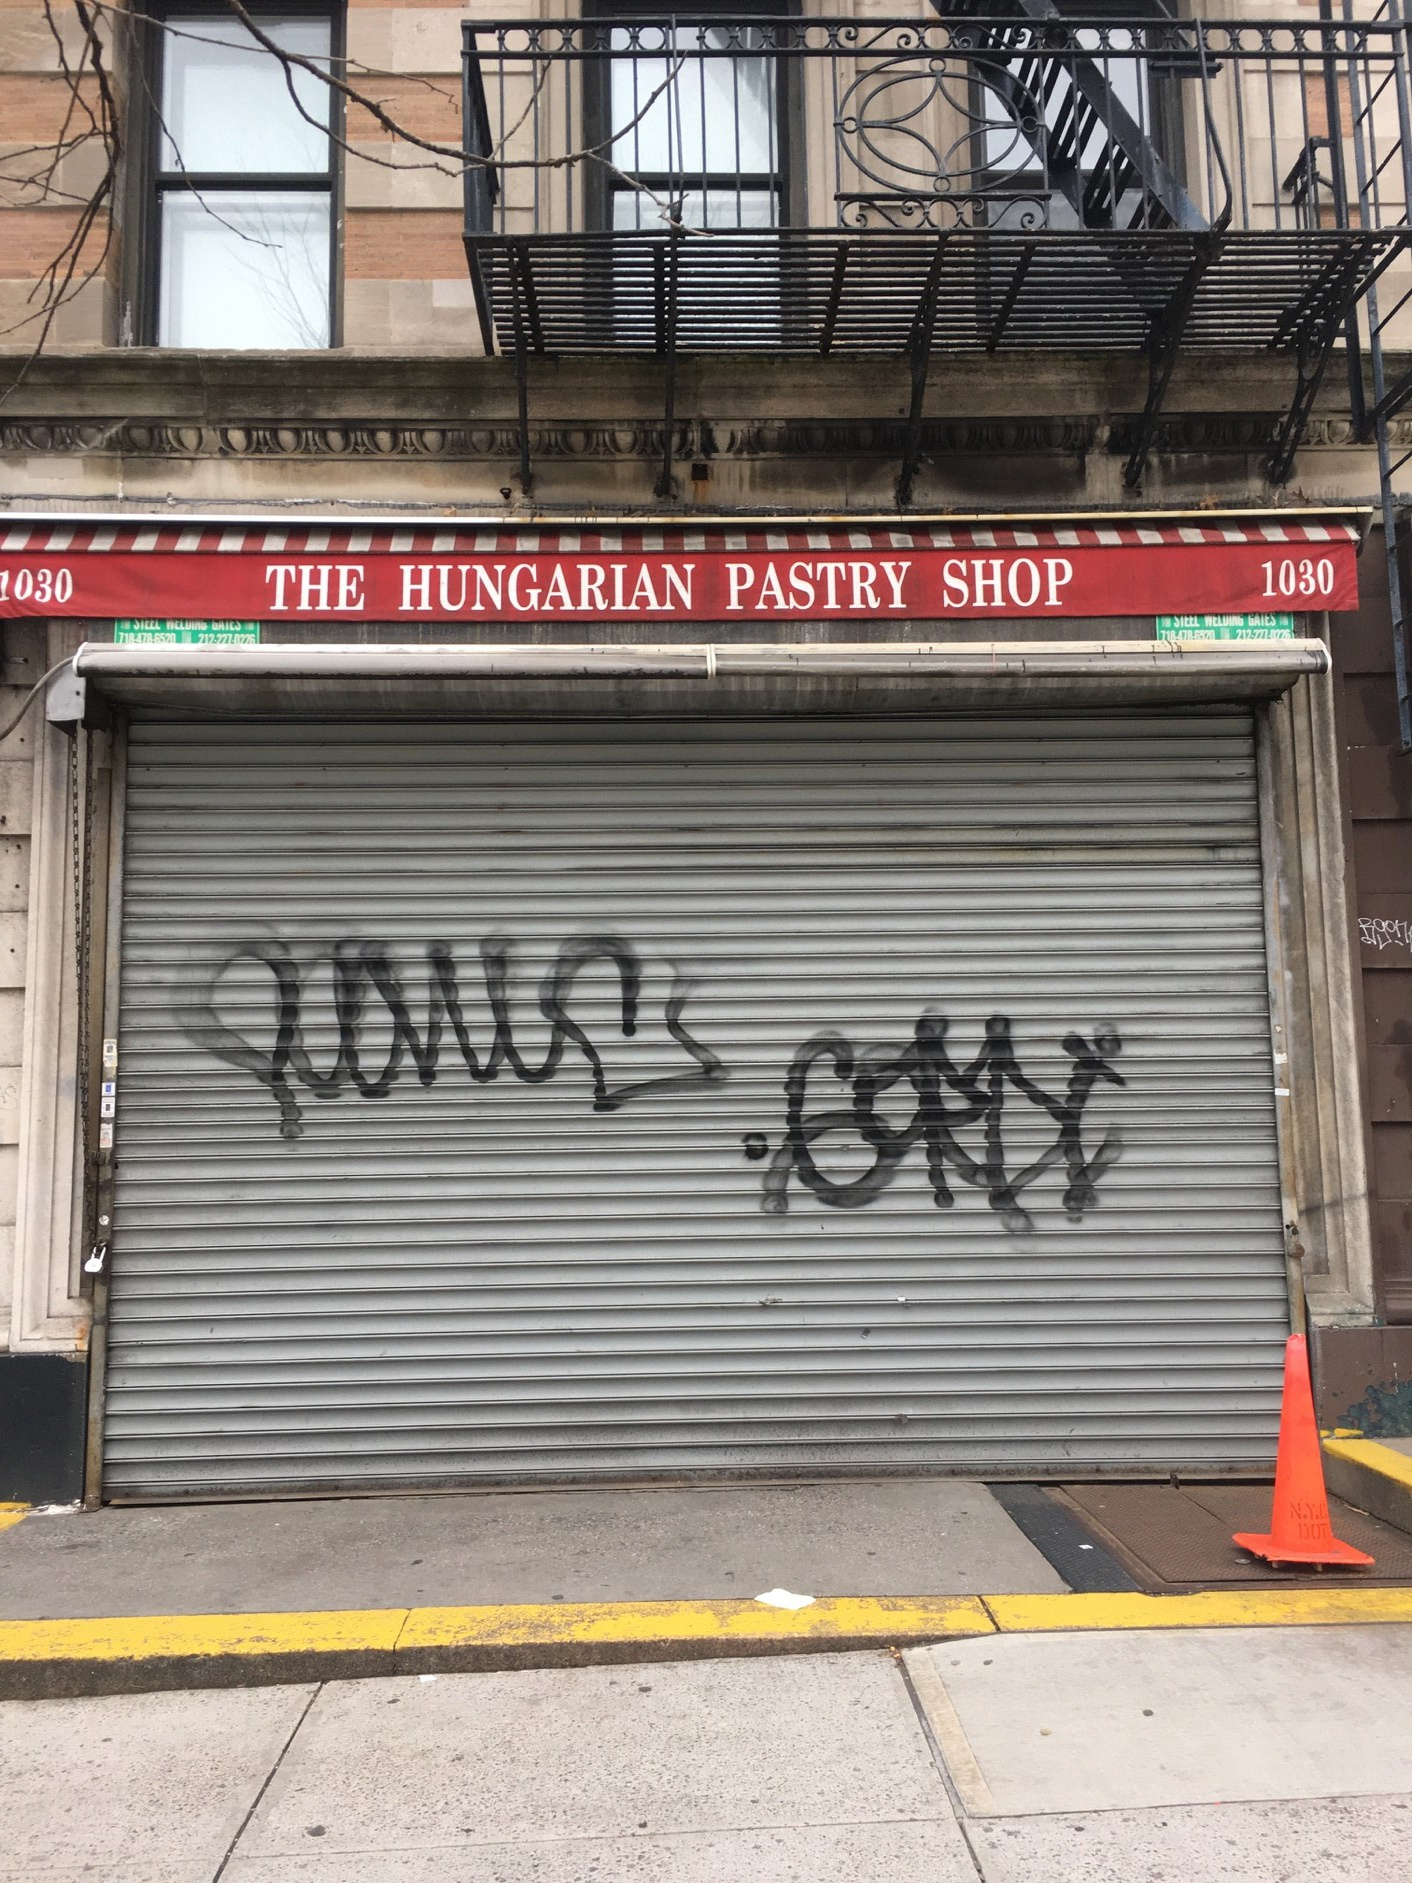 Under the impact of the epidemic, more and more small shops in New York chose to go out of business or shut down completely.